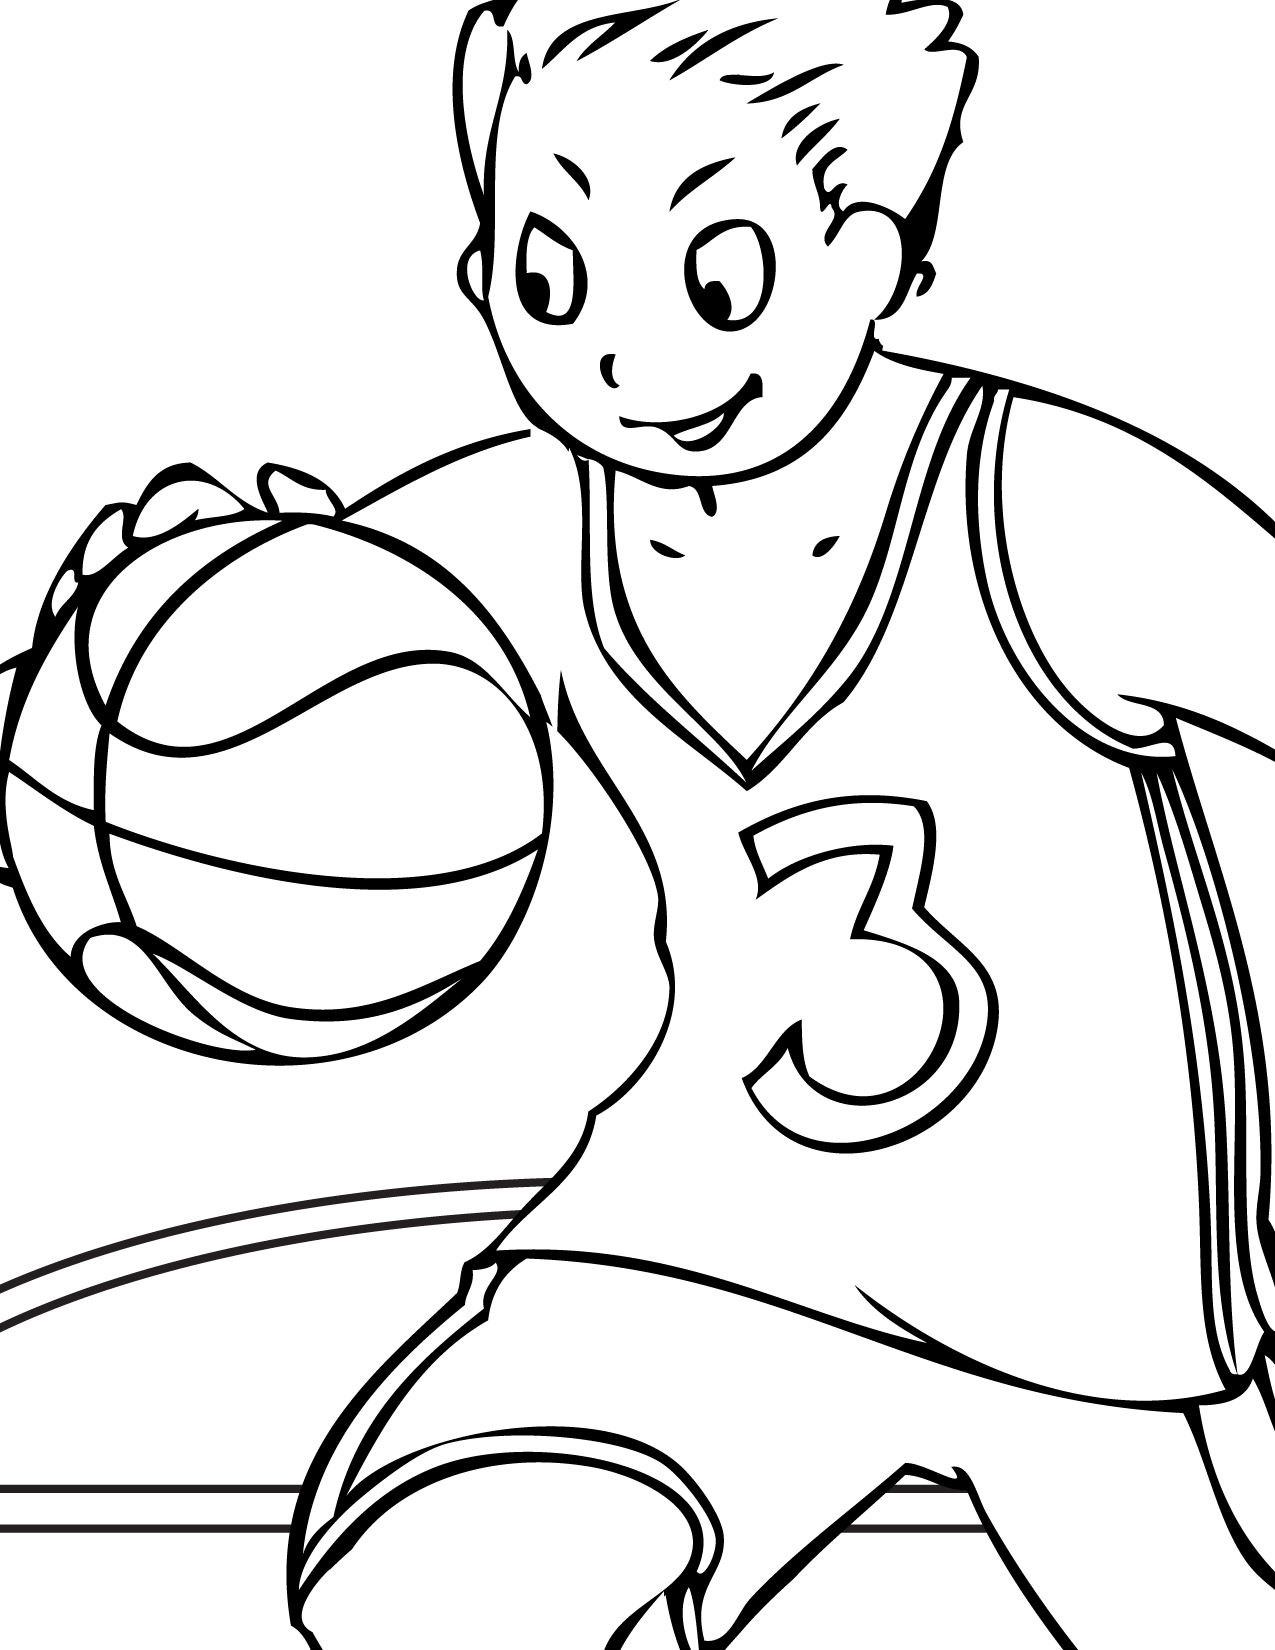 Free Printable Volleyball Coloring Pages For Kids Coloring Pages Printable For Free